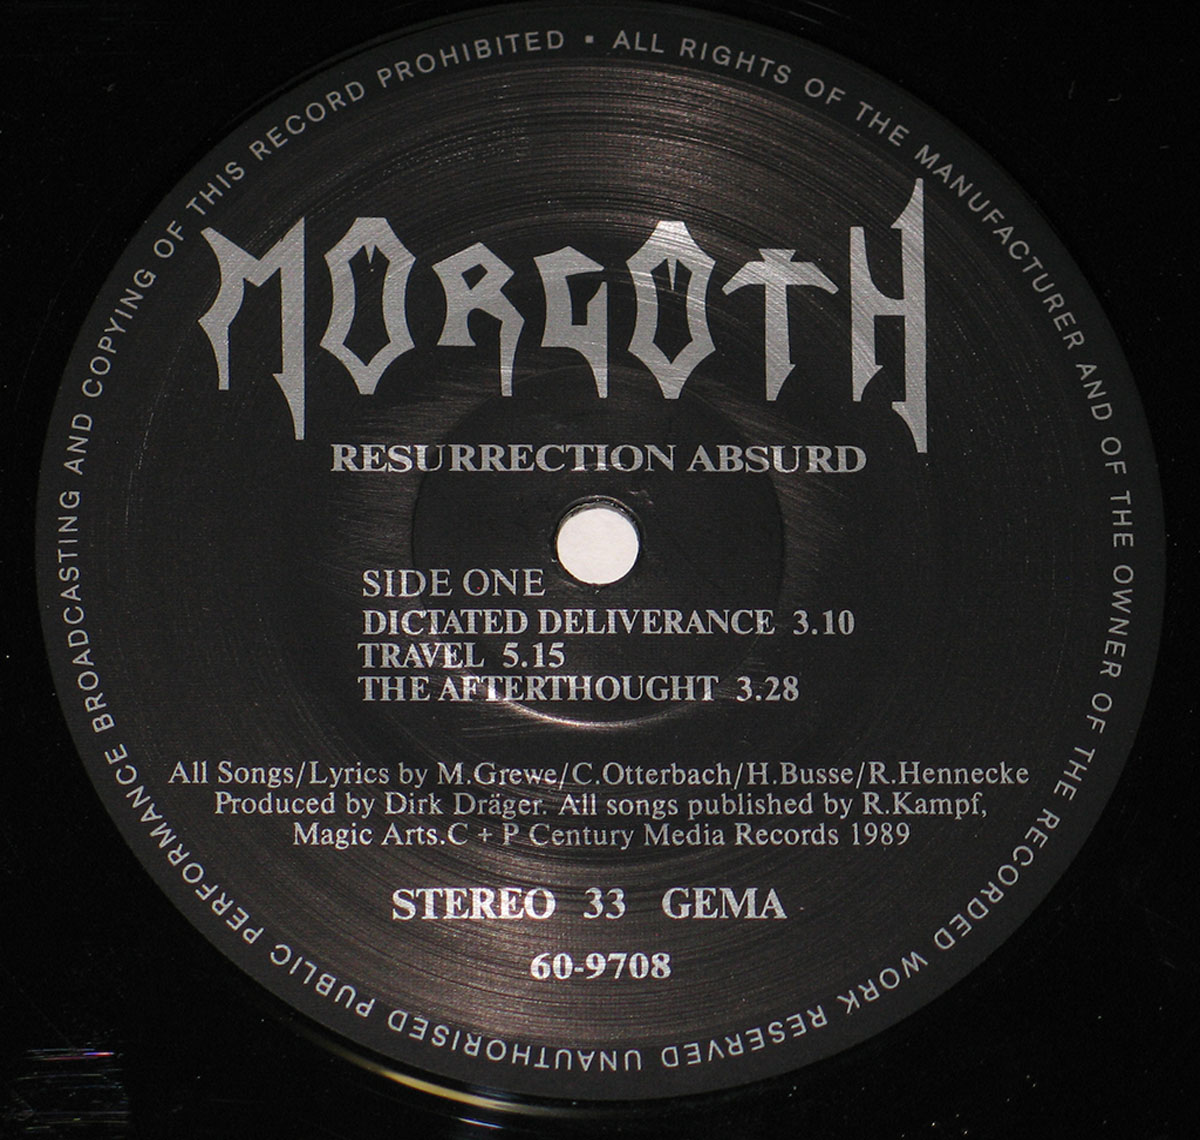 Close up photo of the records label MORGOTH - Resurrection Absurd